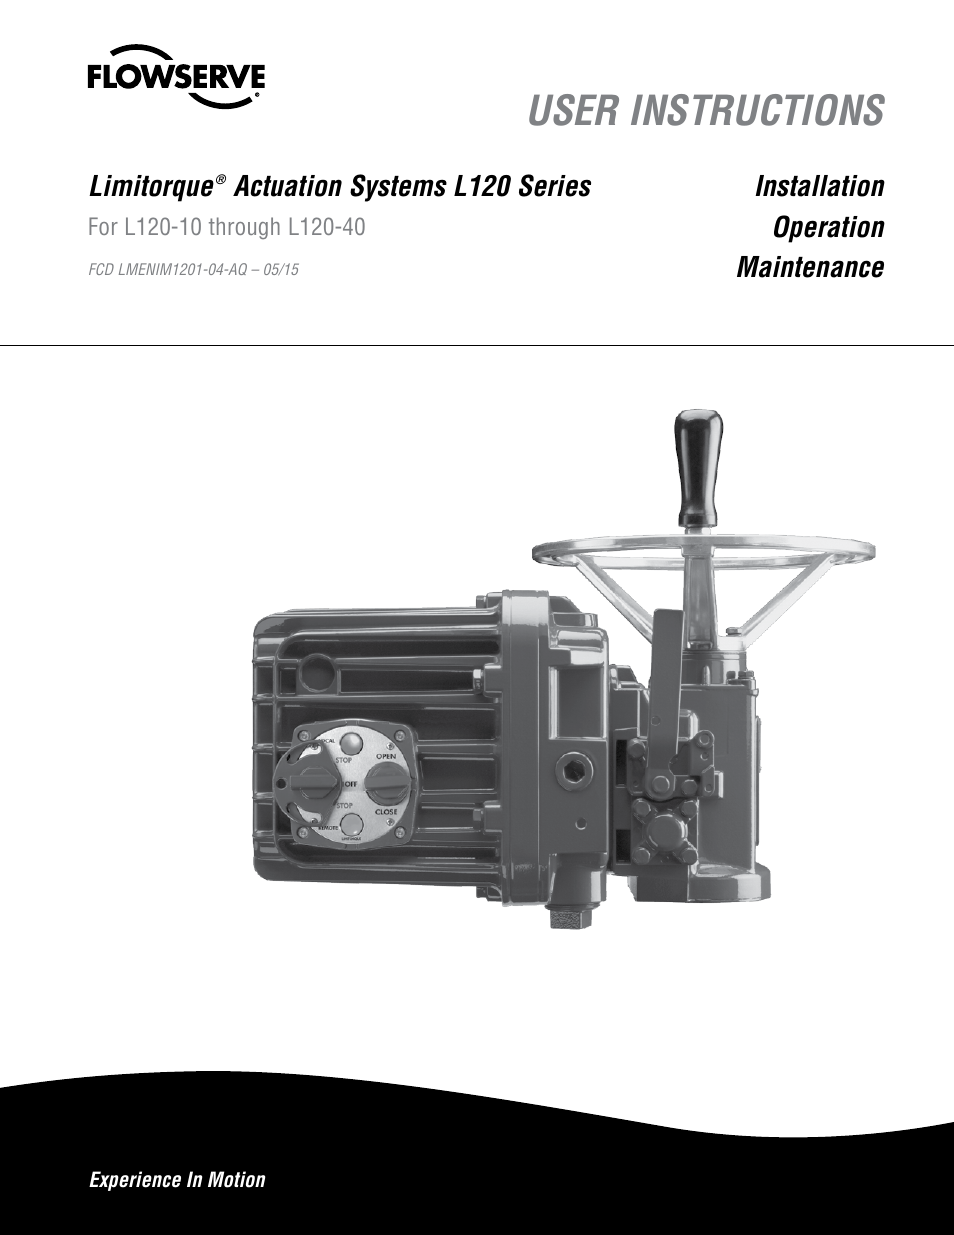 Wiring Limitorque Diagrams W 16468 Electrical Nordstrom Actuator Diagram L120 Best And Letter Flowserve